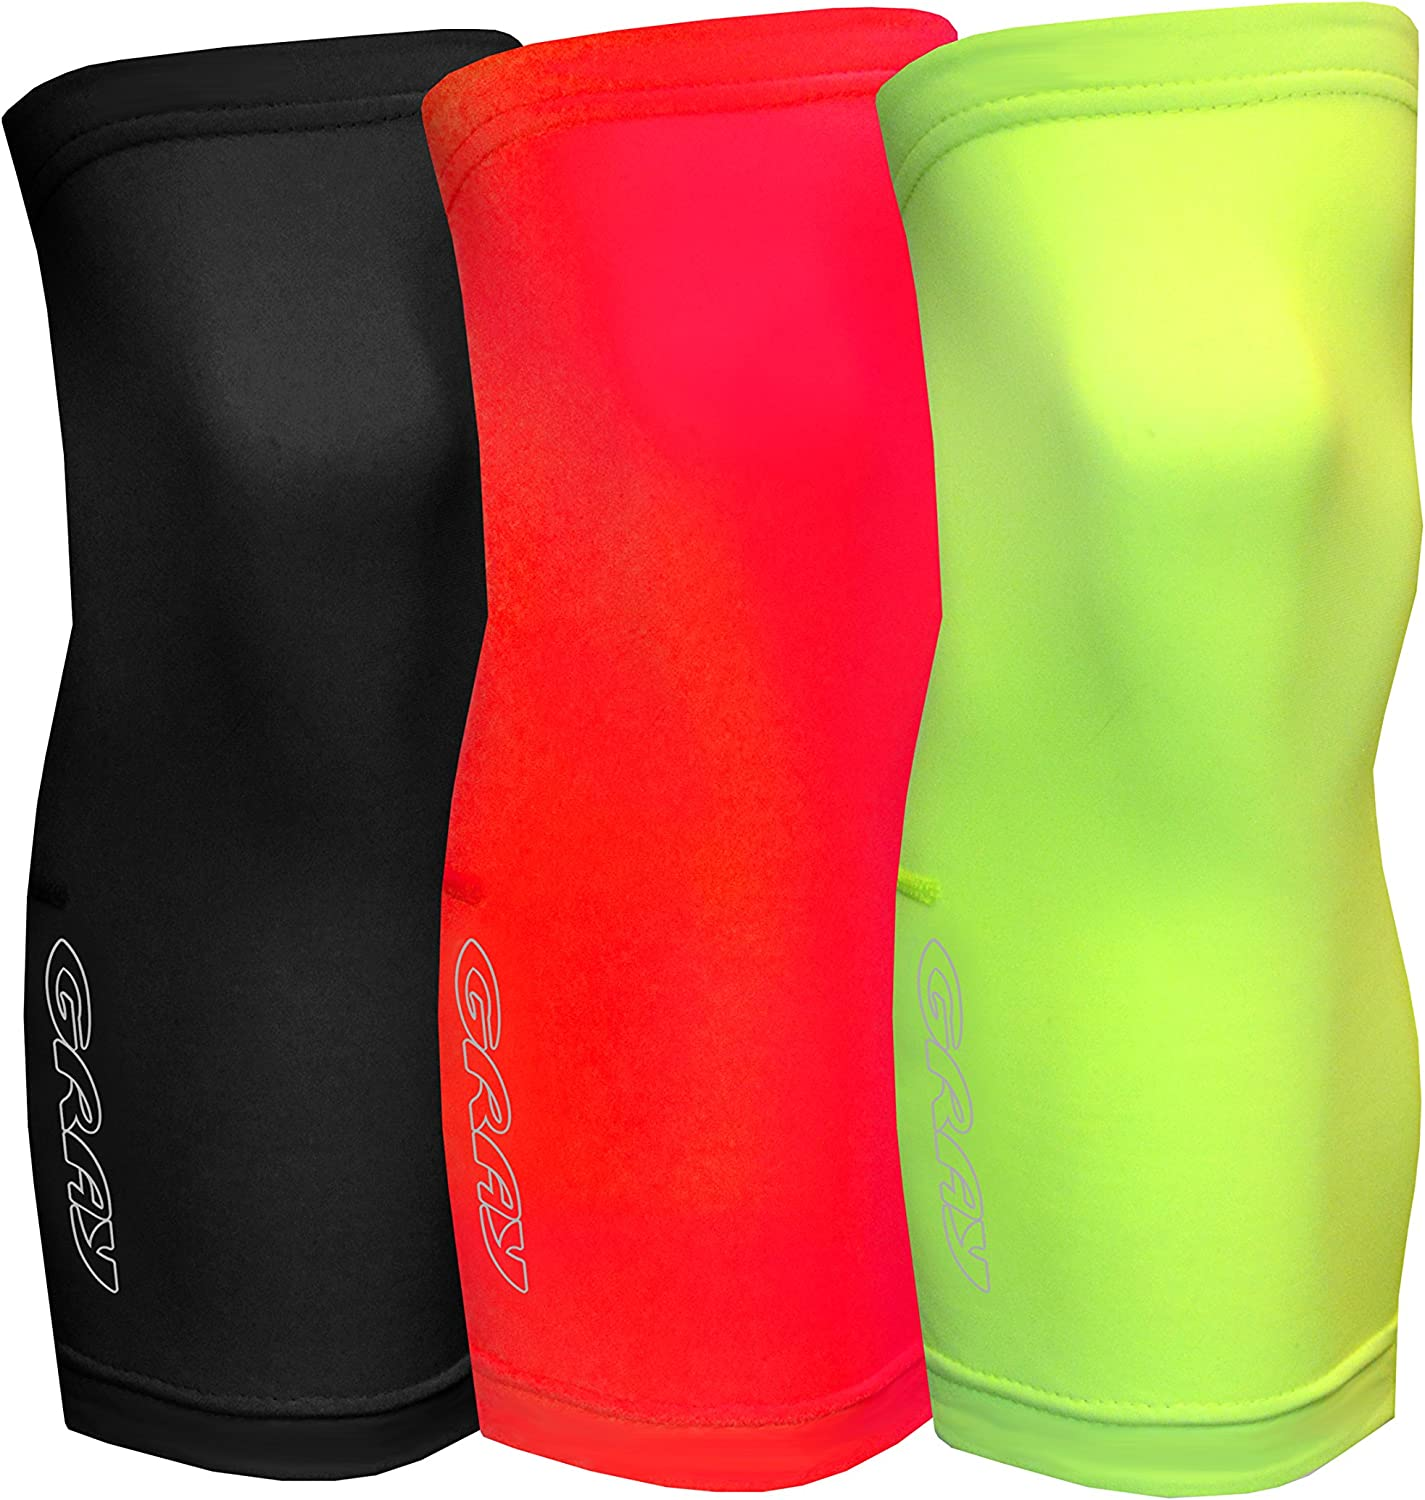 Synergy Max 44% OFF Cycling Over item handling ☆ Thermal Knee Warmers